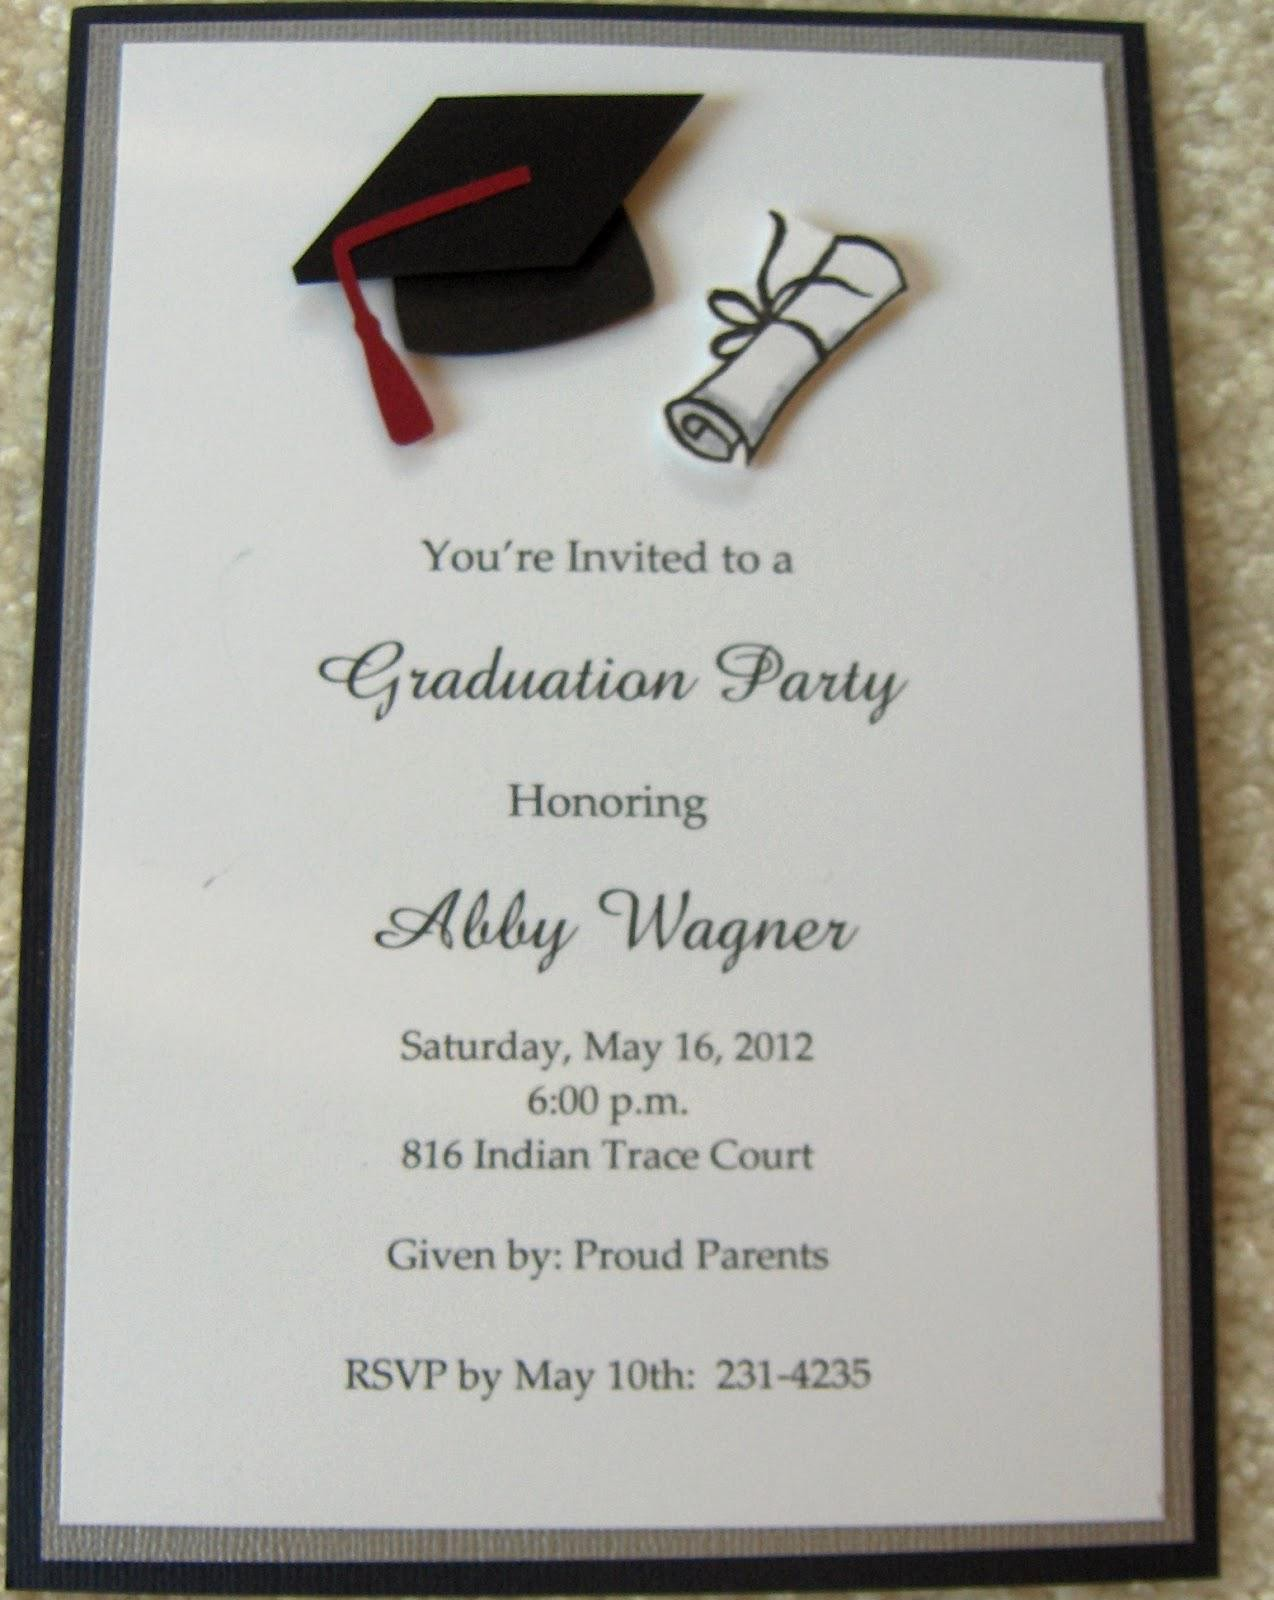 Template for Graduation Party Invitation Inspirational College Graduation Party Invitations